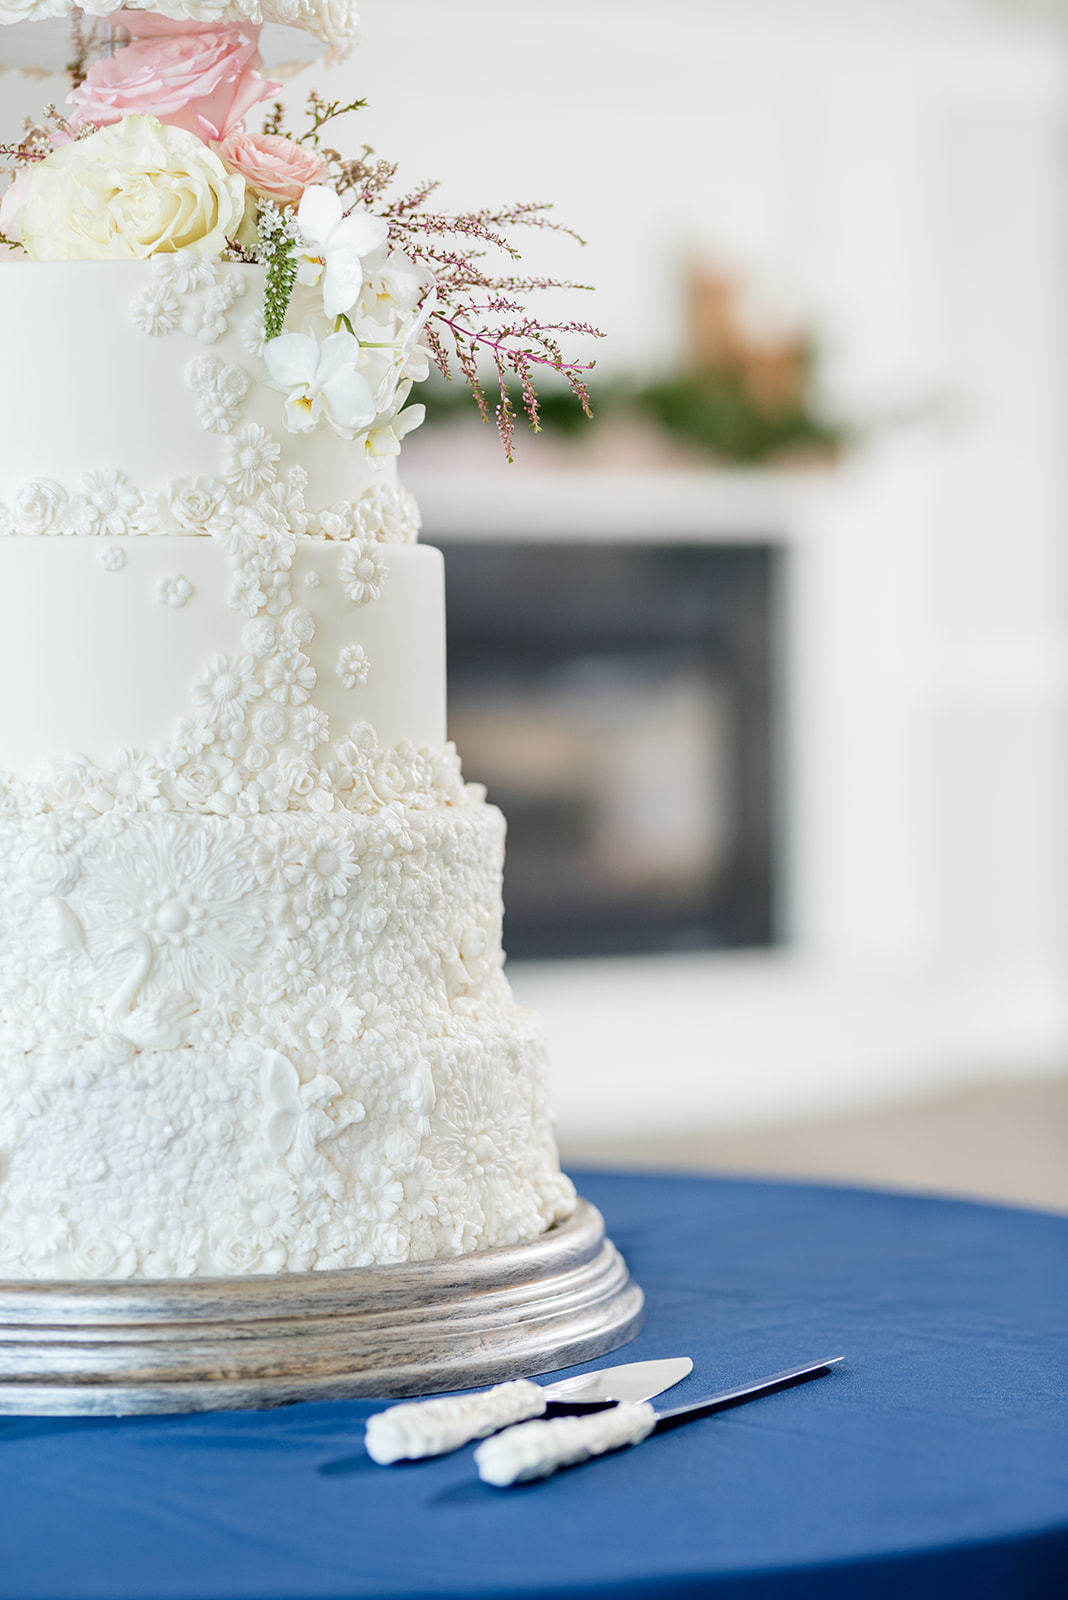 Bas relief textured white fondant wedding cake